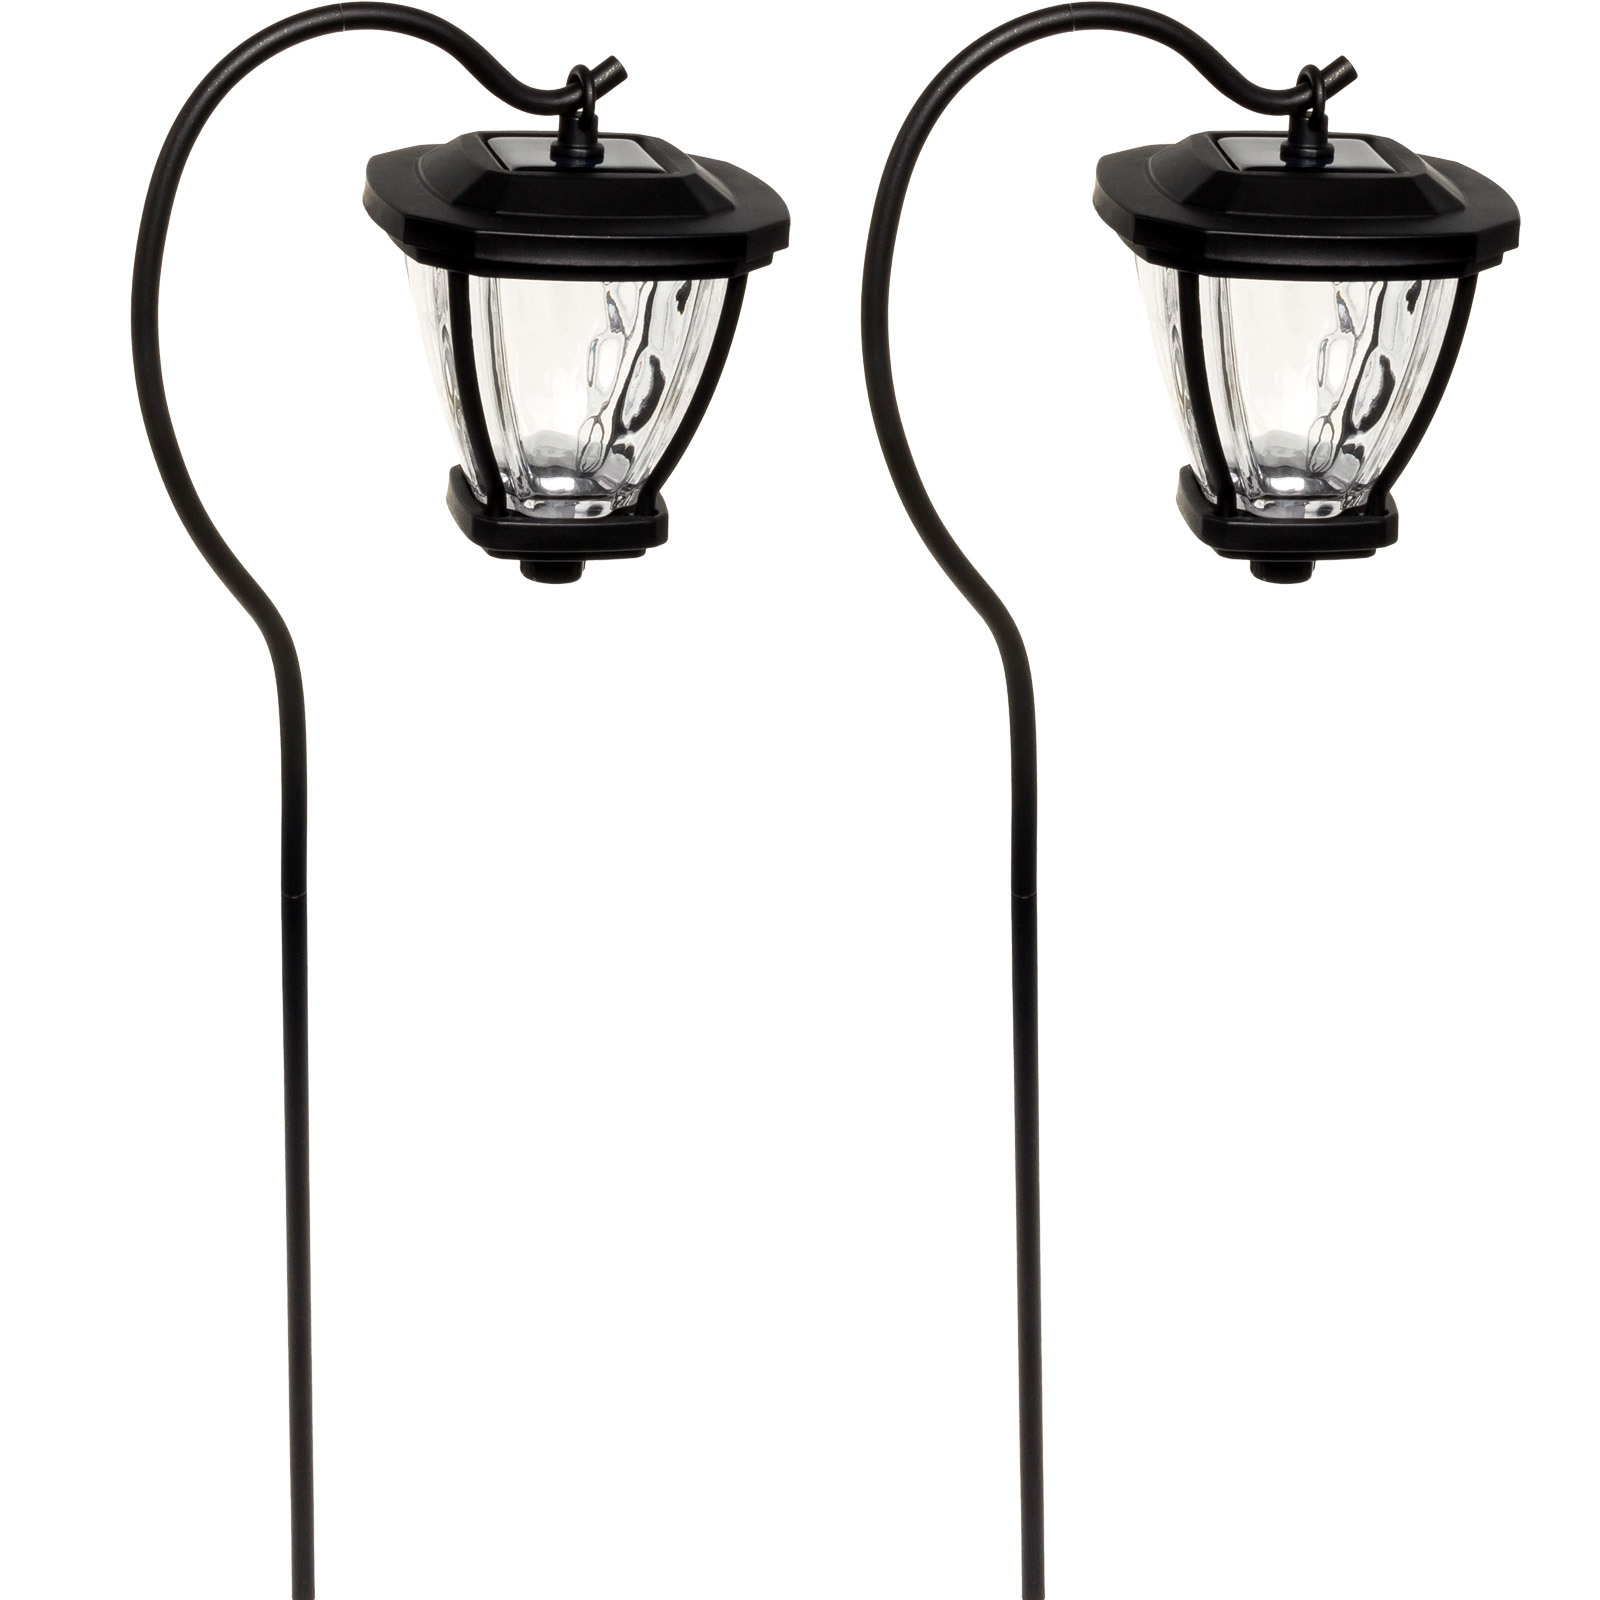 FUSION New Black Solar LED Shepherds Hook Hanging Lantern Path Lights (2 Pack) by Fusion